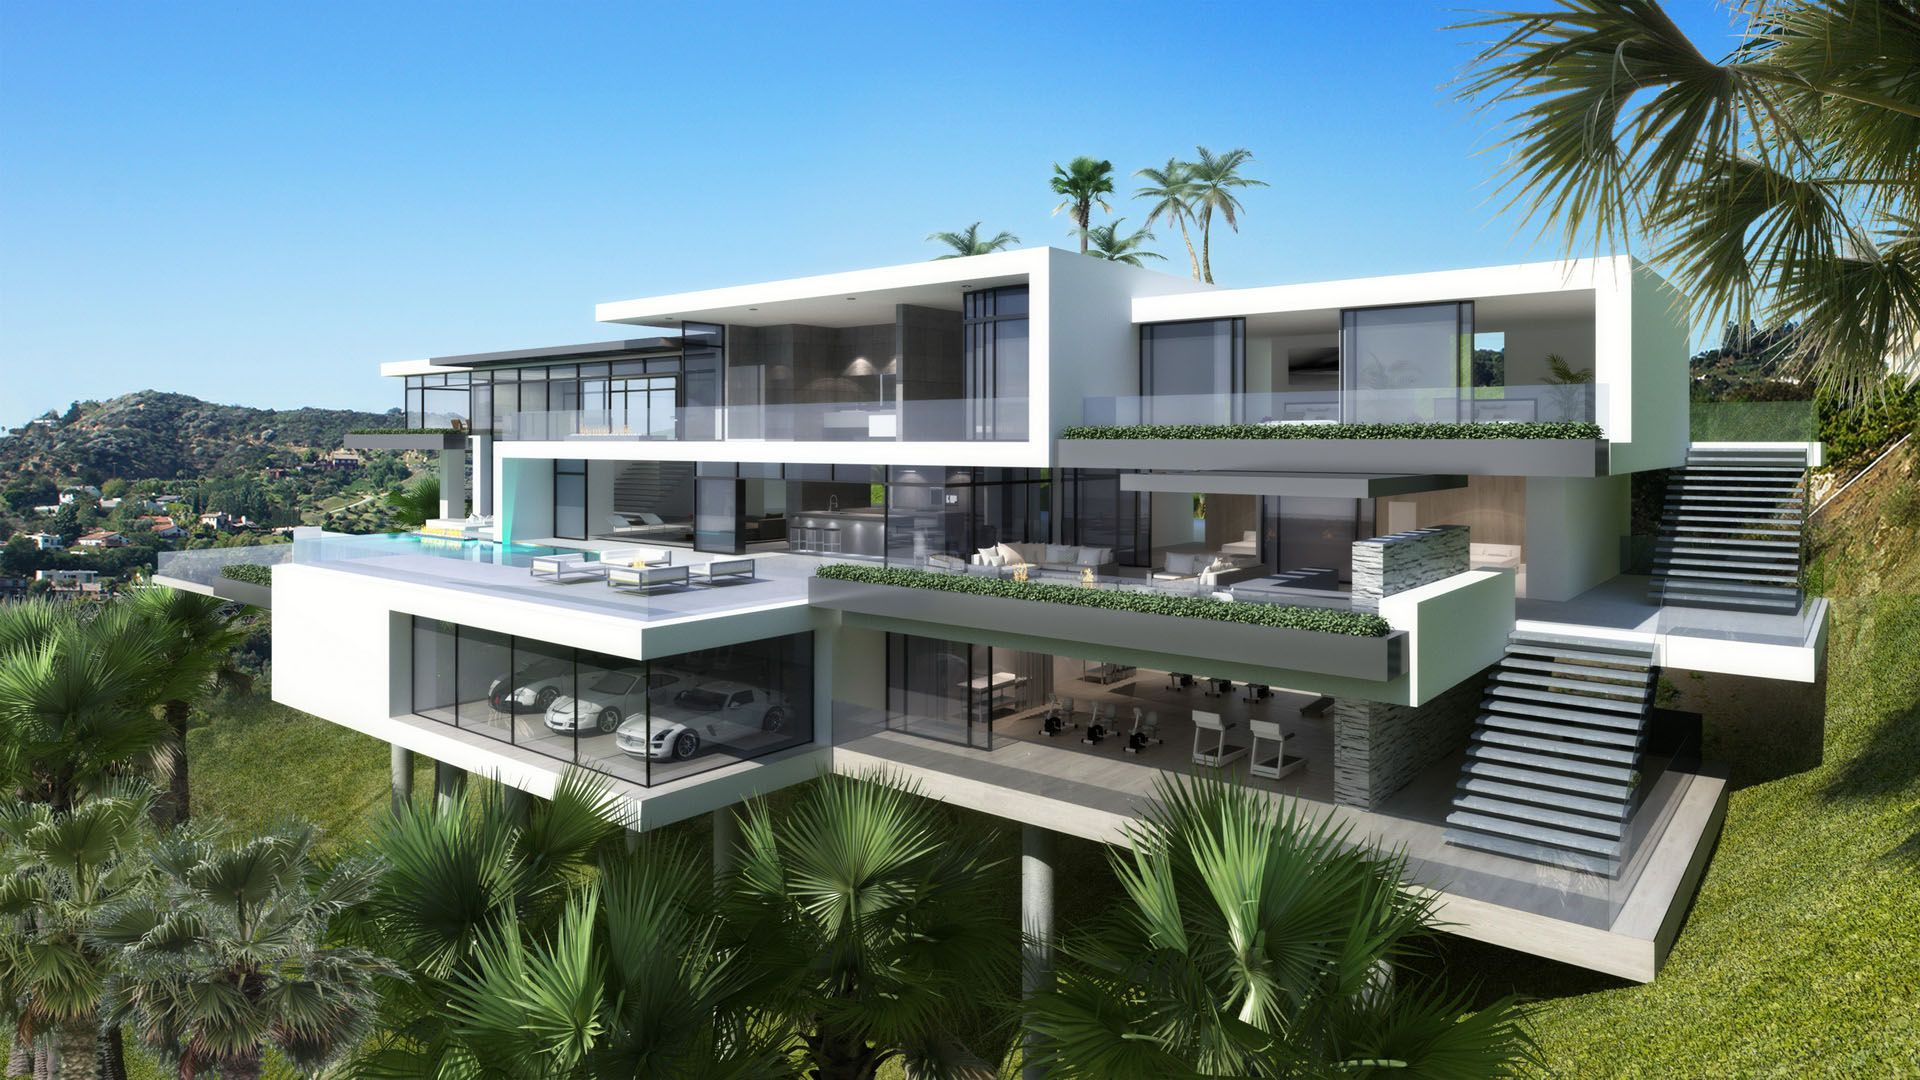 Big Beautiful Modern Mansions modern mansions on sunset plaza drive in la: modern mansions plan